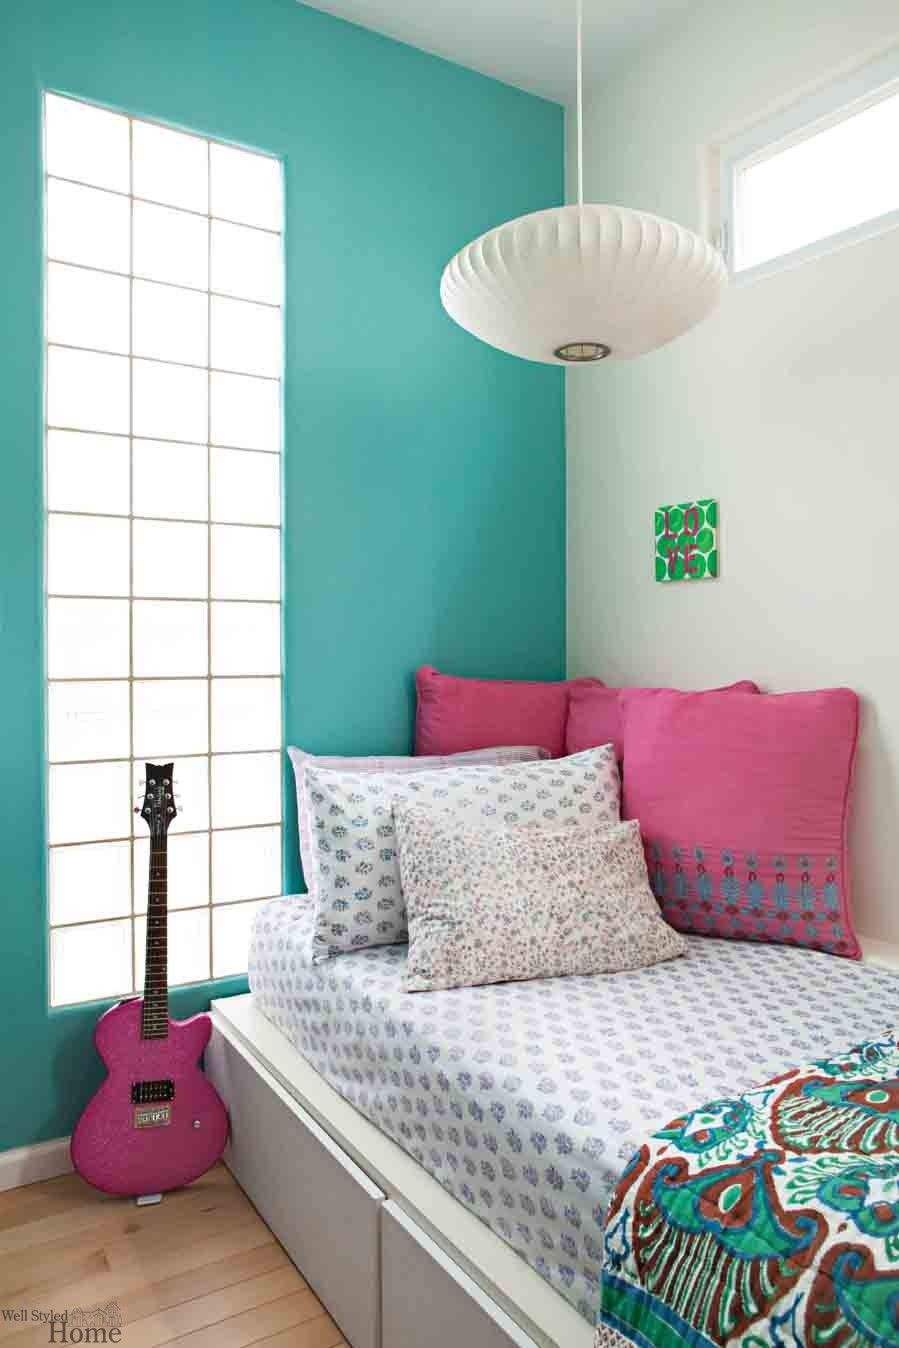 Girly Tips for a Teen Girls Bedroom Decor Ideas | Stuff ...